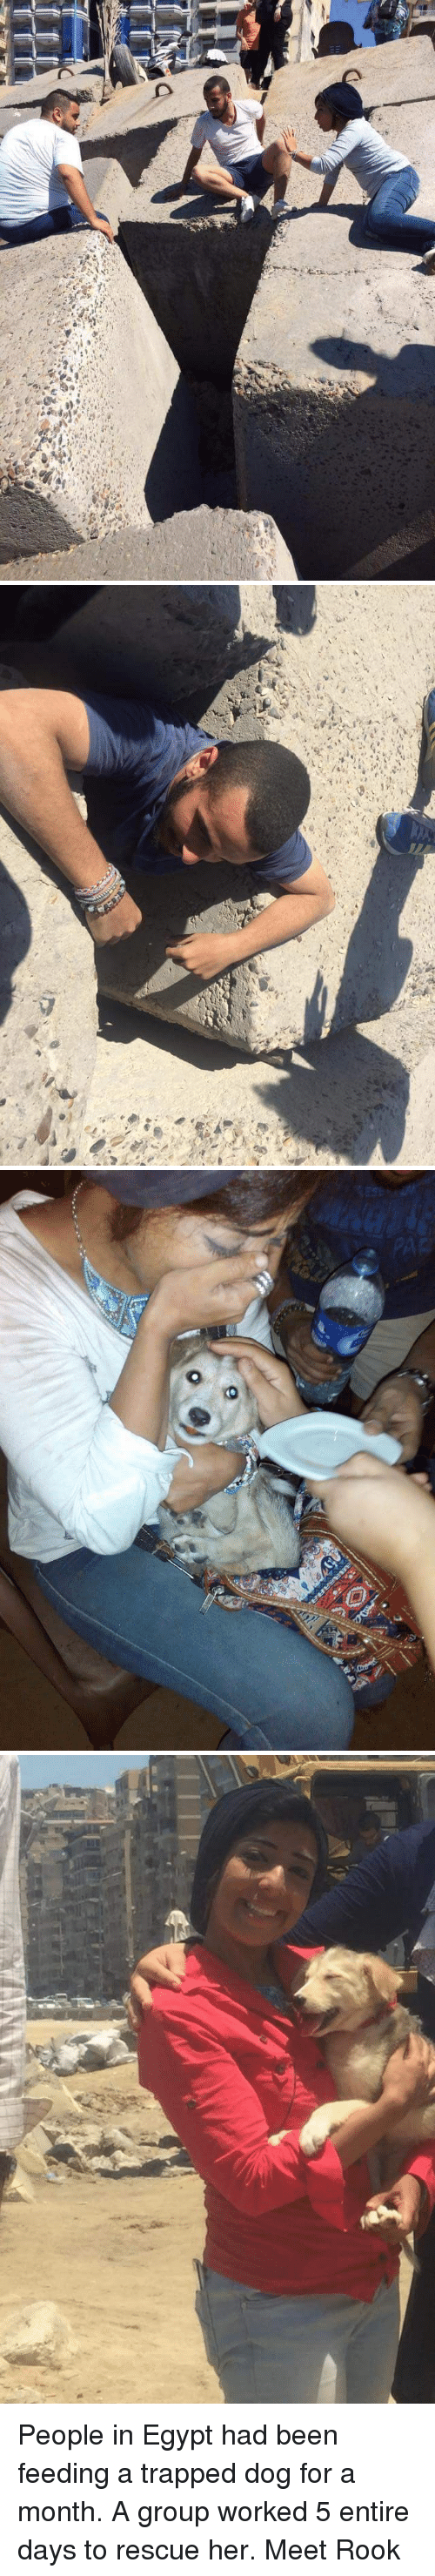 """Funny: """"fan i :与,""""r""""me',  ら1   o People in Egypt had been feeding a trapped dog for a month. A group worked 5 entire days to rescue her. Meet Rook"""